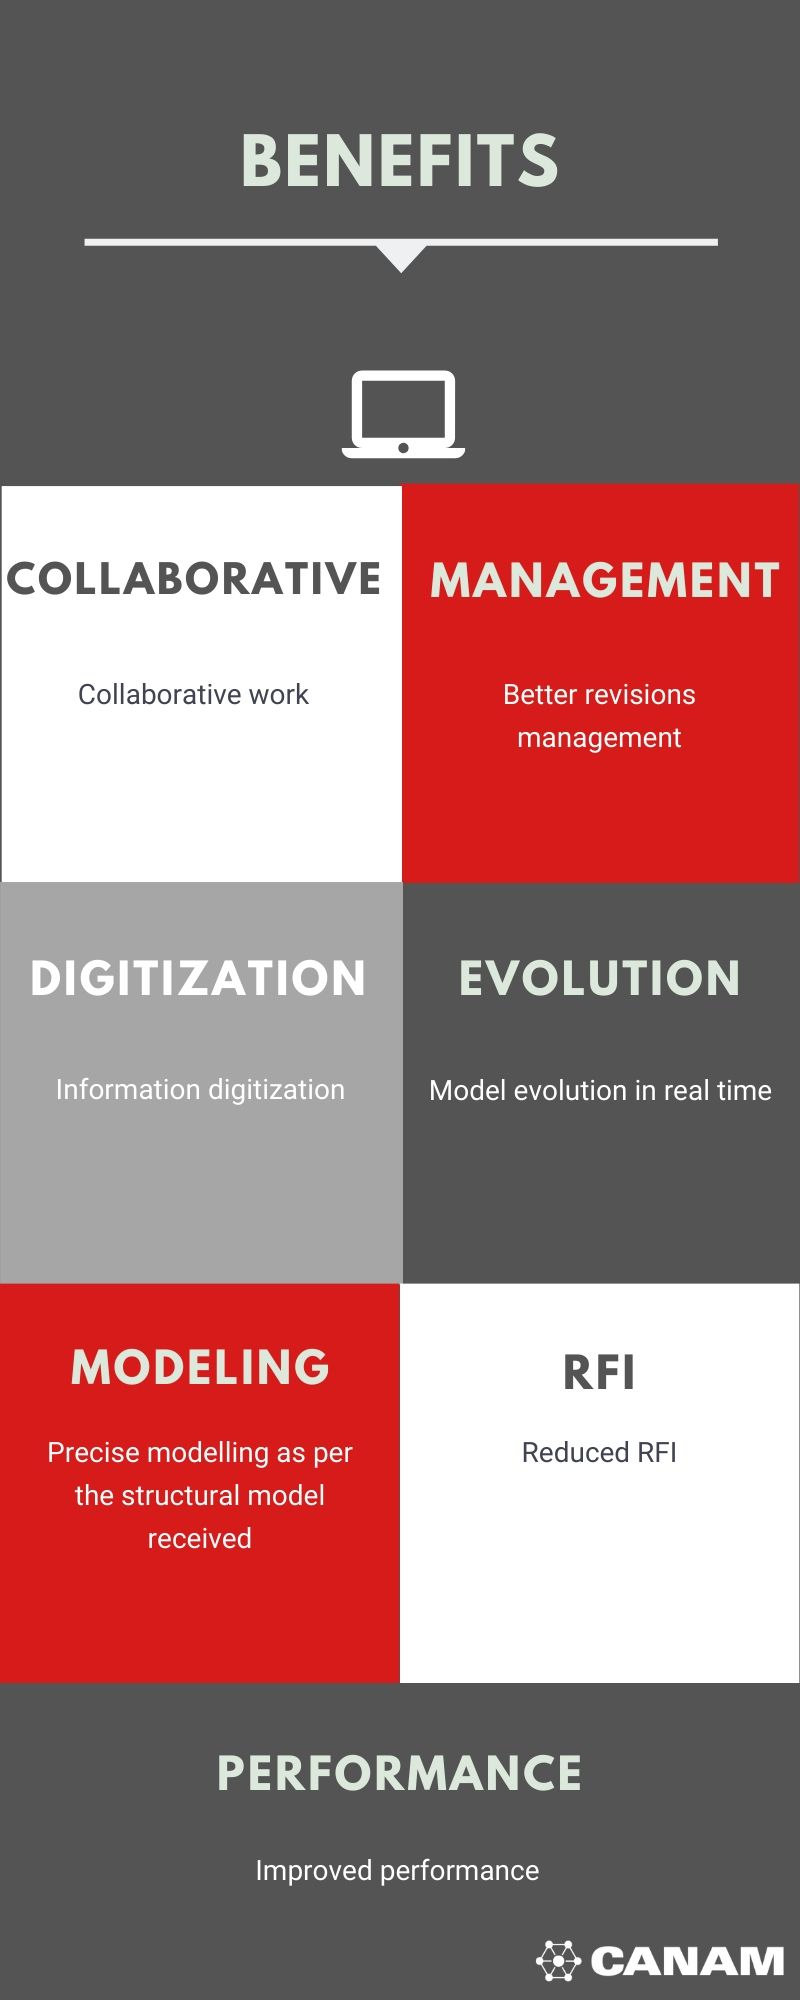 Benefits infographic modeling advantages